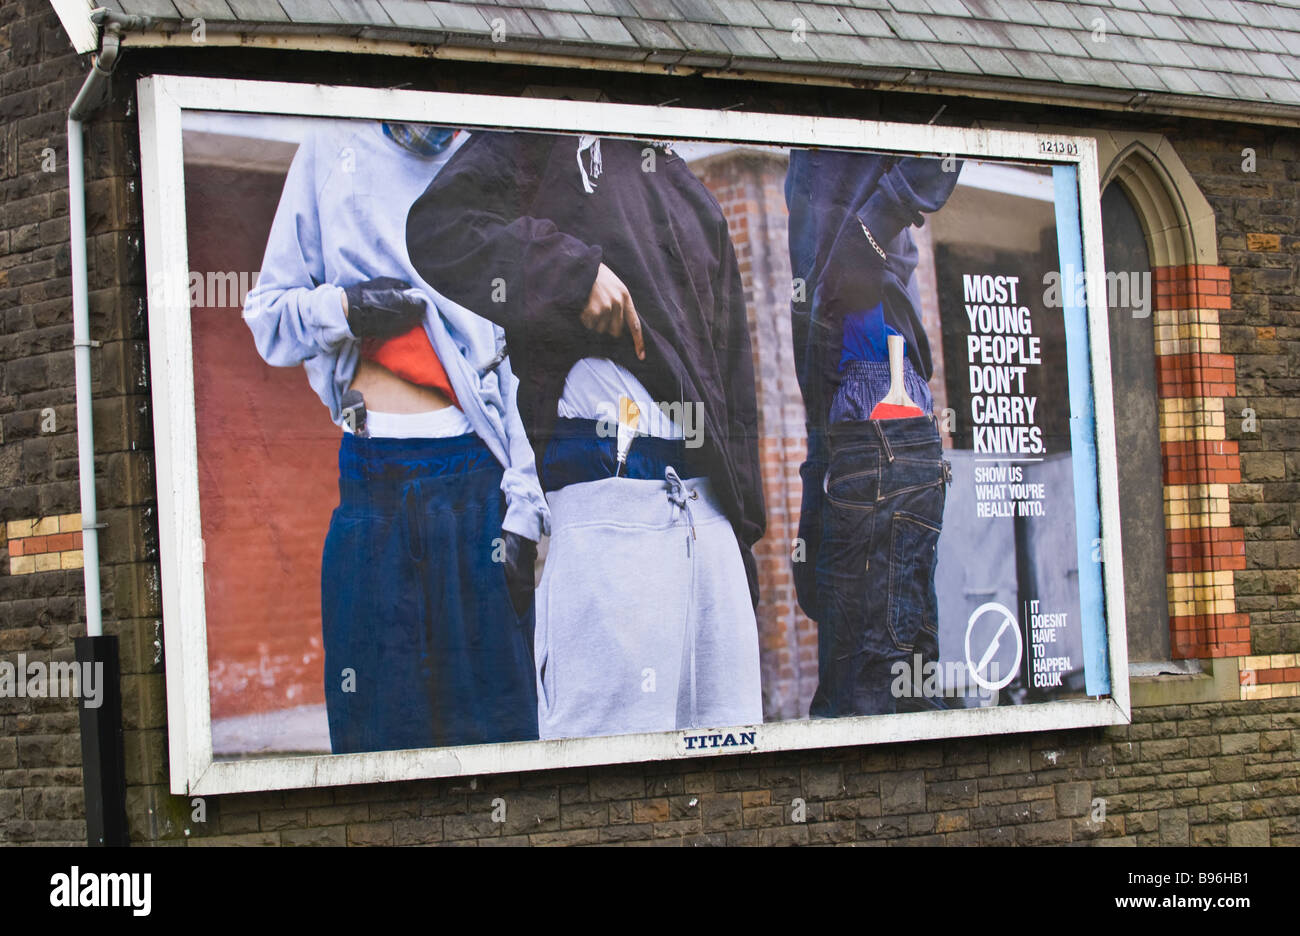 Titan billboard site advertising campaign to stop knife crime amongst young people on side of building in Treorchy - Stock Image